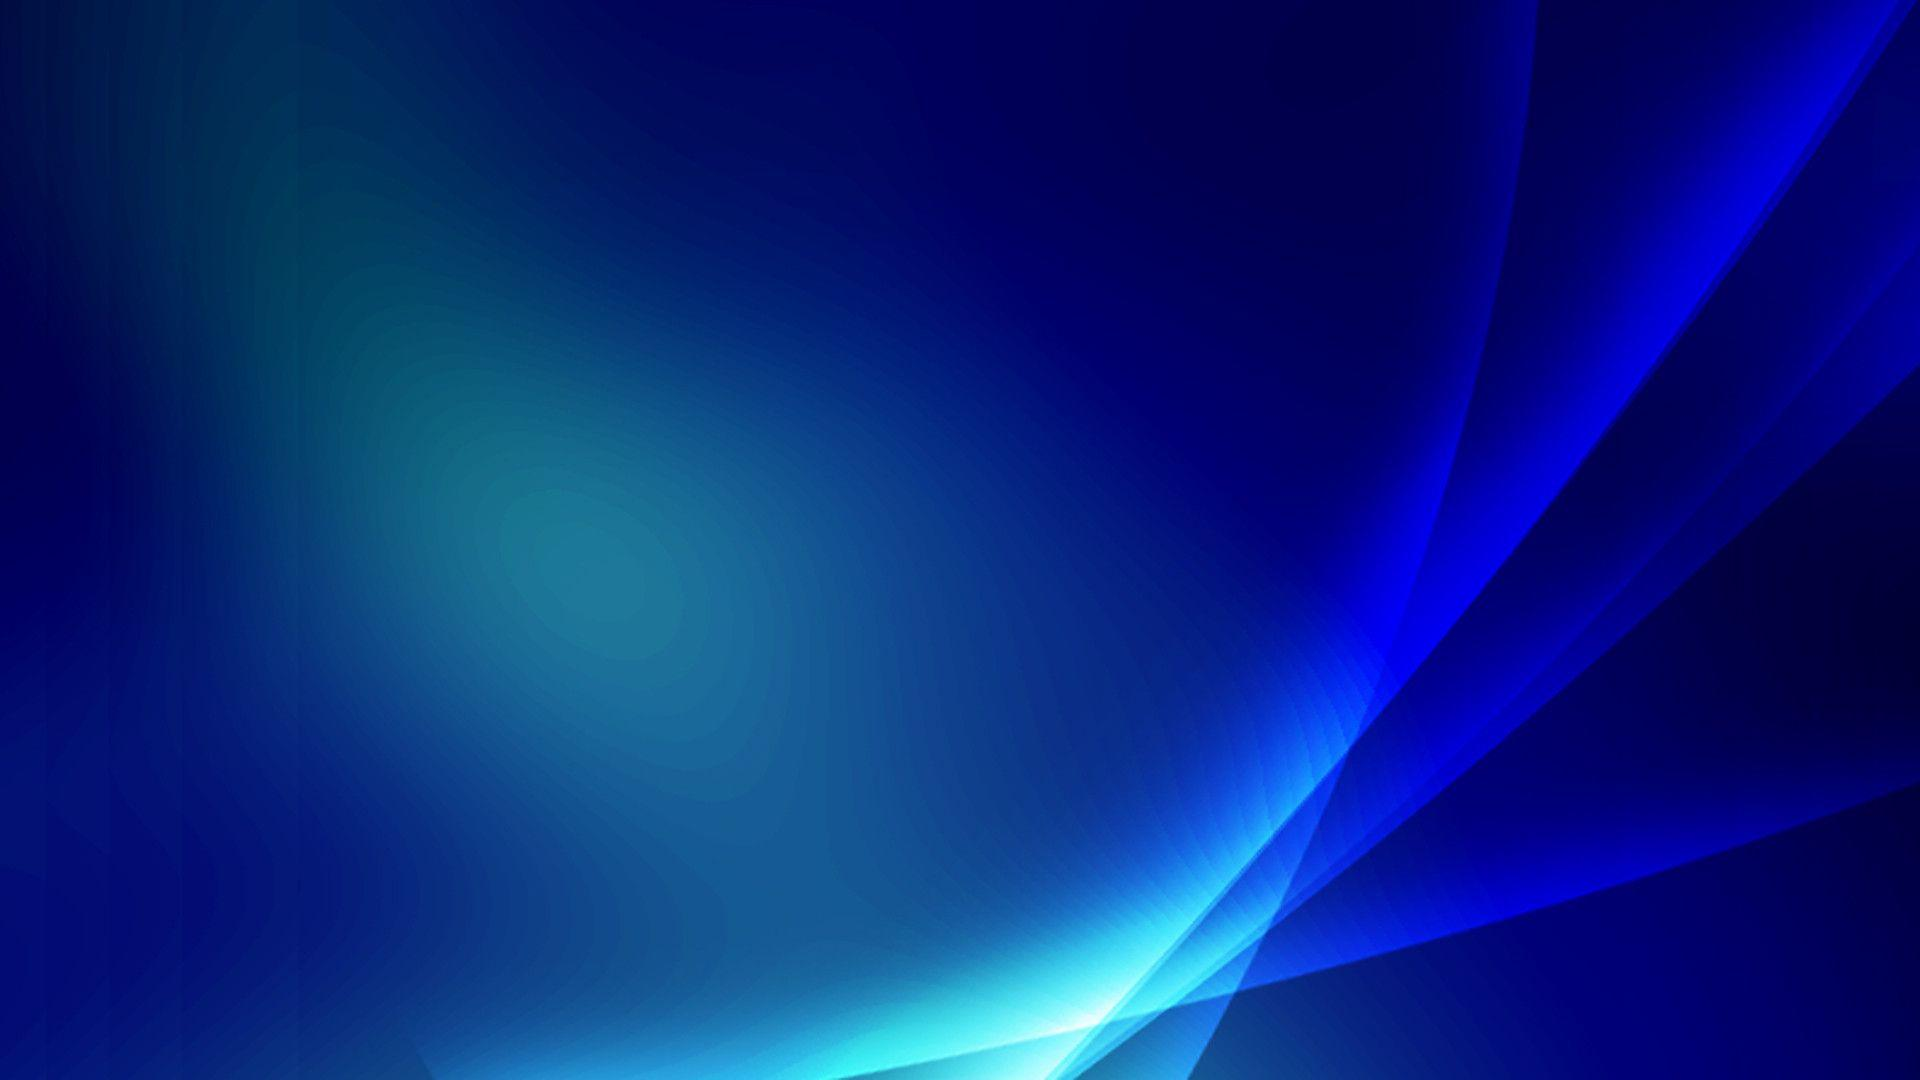 Royal Blue Wallpapers - Top Free Royal Blue Backgrounds - WallpaperAccess